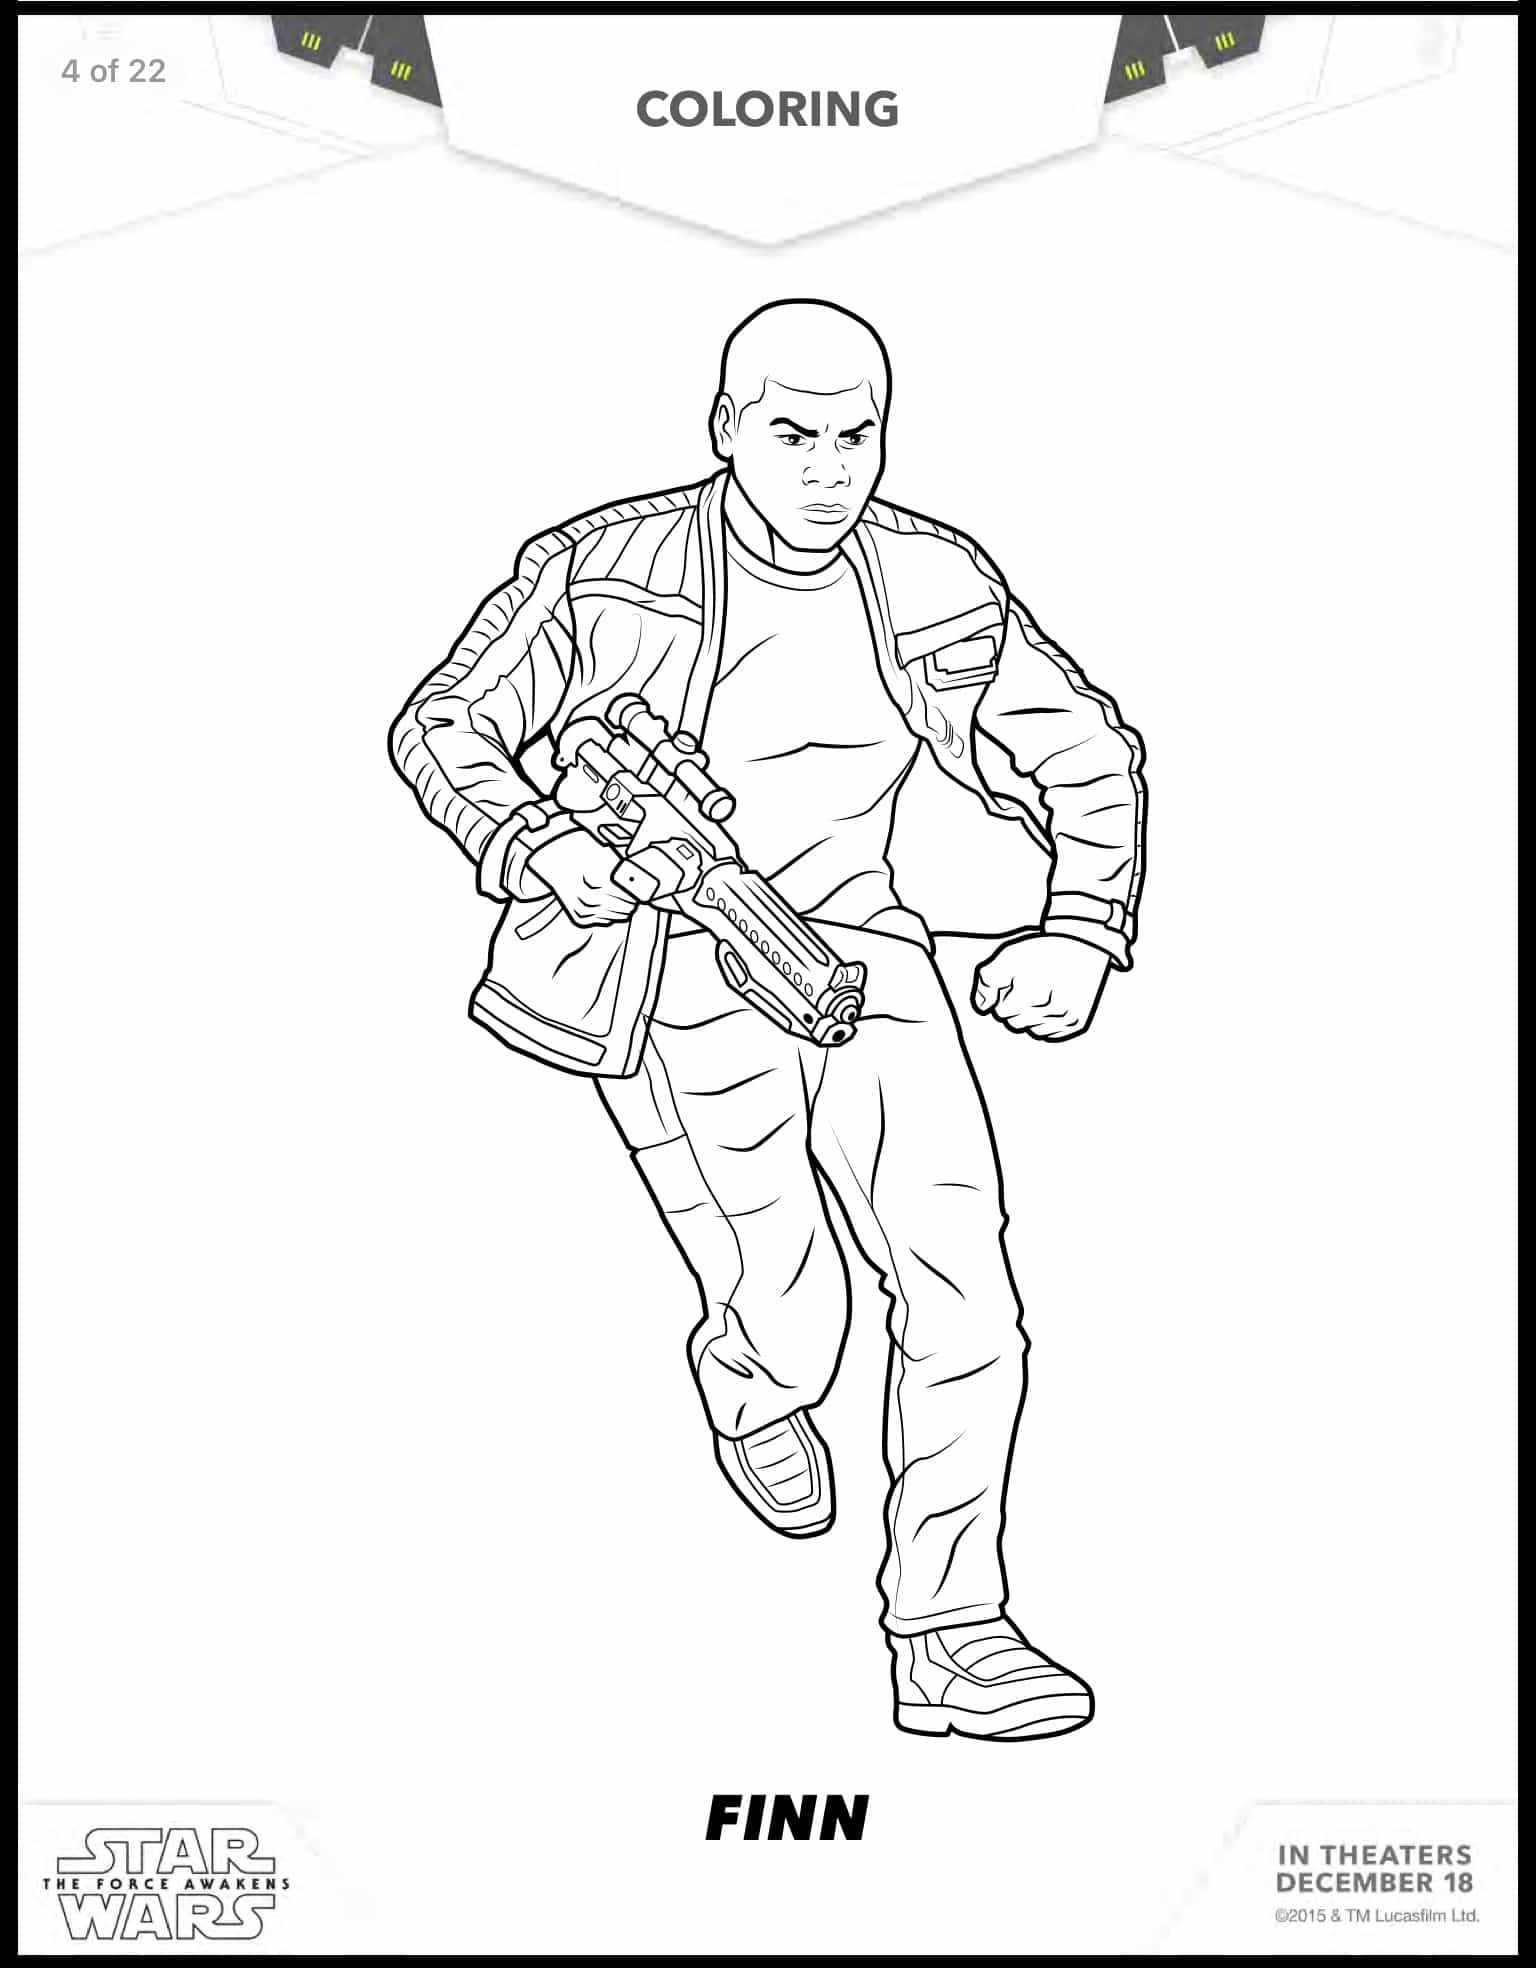 Coloring pages star wars kylo ren - Finn Free Printable Star Wars Coloring Sheets